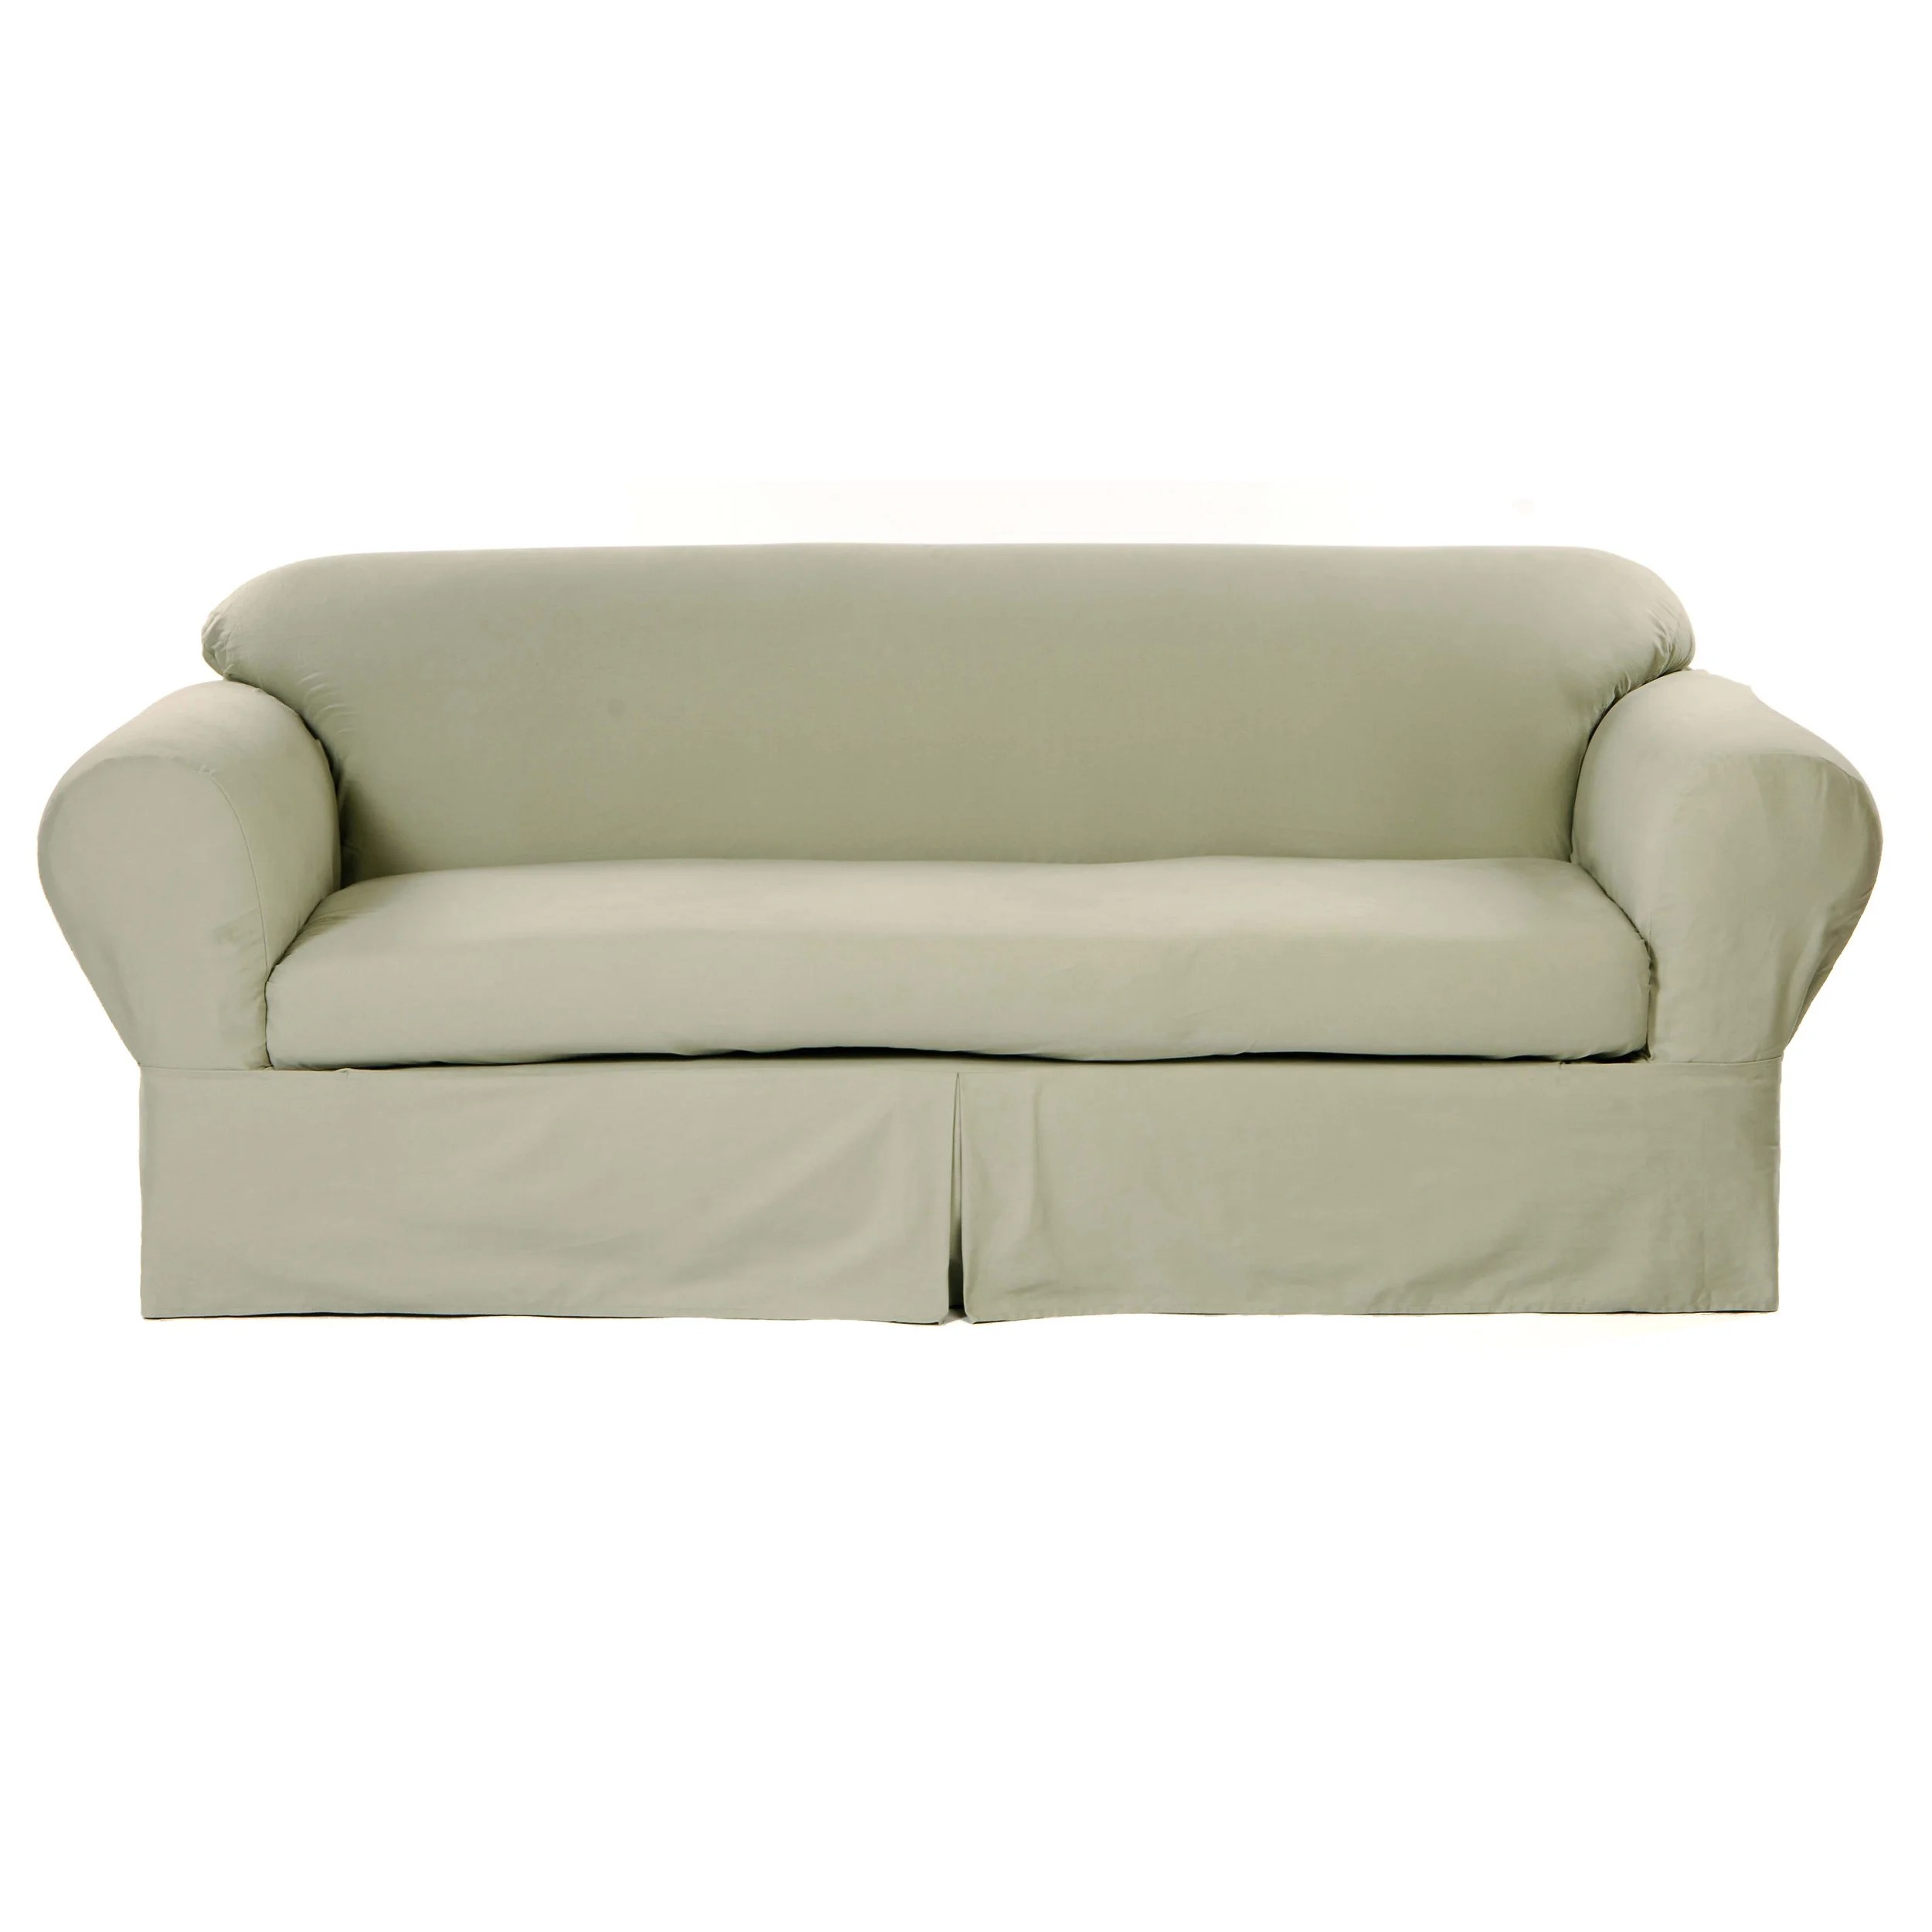 Buy Sofa Bed Online Buy Sofa Couch Slipcovers Online At Overstock Our Best